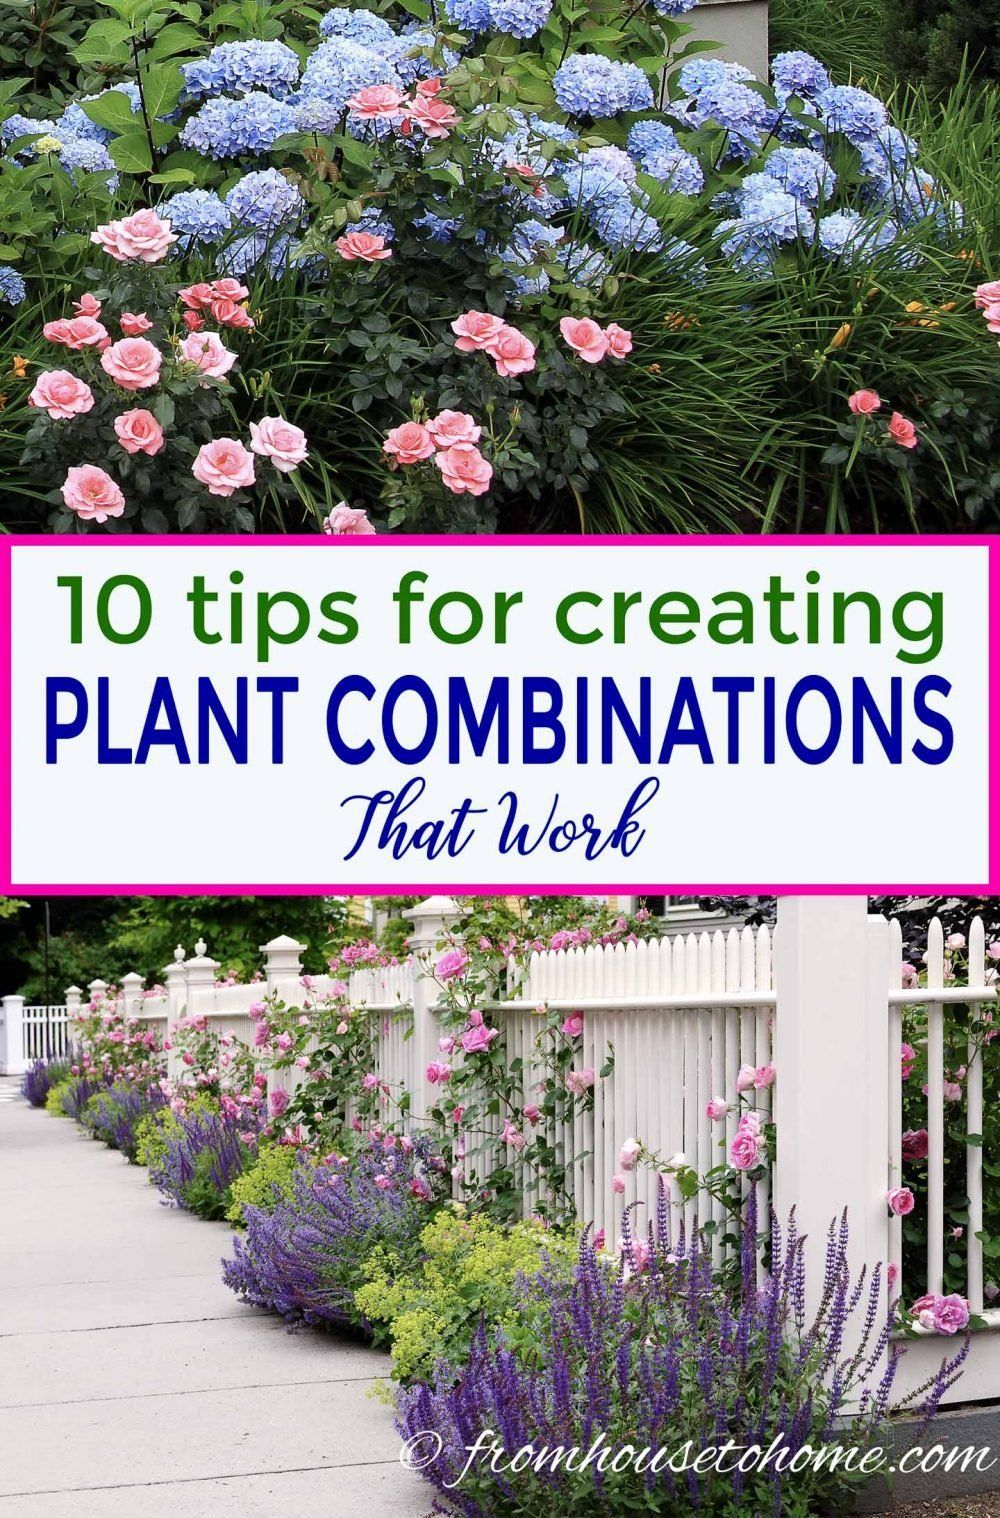 Plant Combinations 10 Tips For Creating Flower Combinations That Work Gardening From House To Home In 2020 Plants Plant Combinations Garden Types